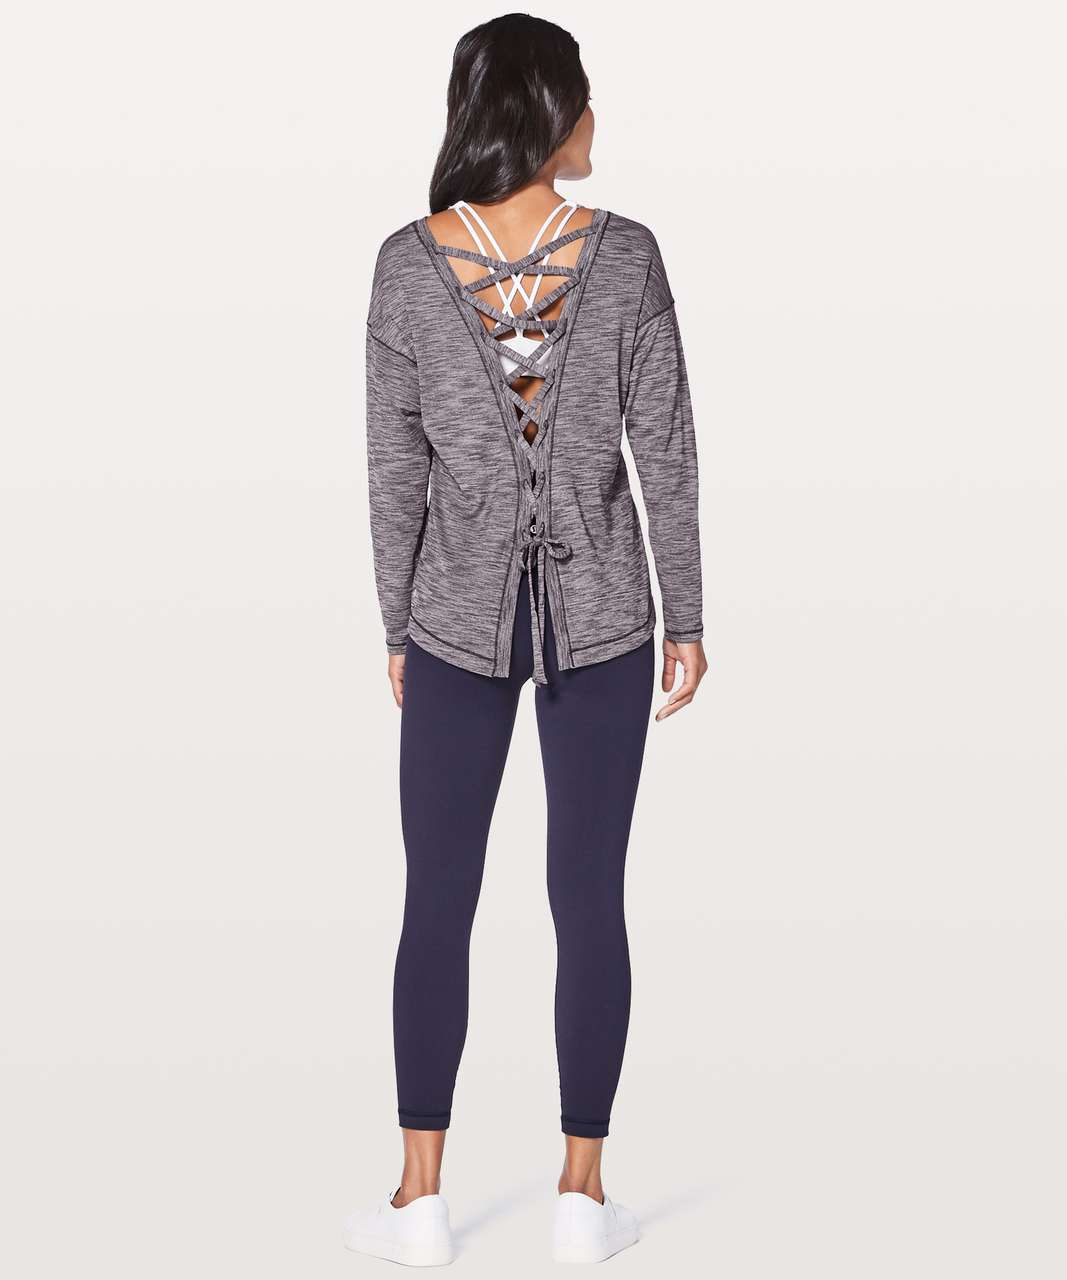 9bb6a82783 Lululemon Laced With Intent Long Sleeve - Heathered Black Grape ...